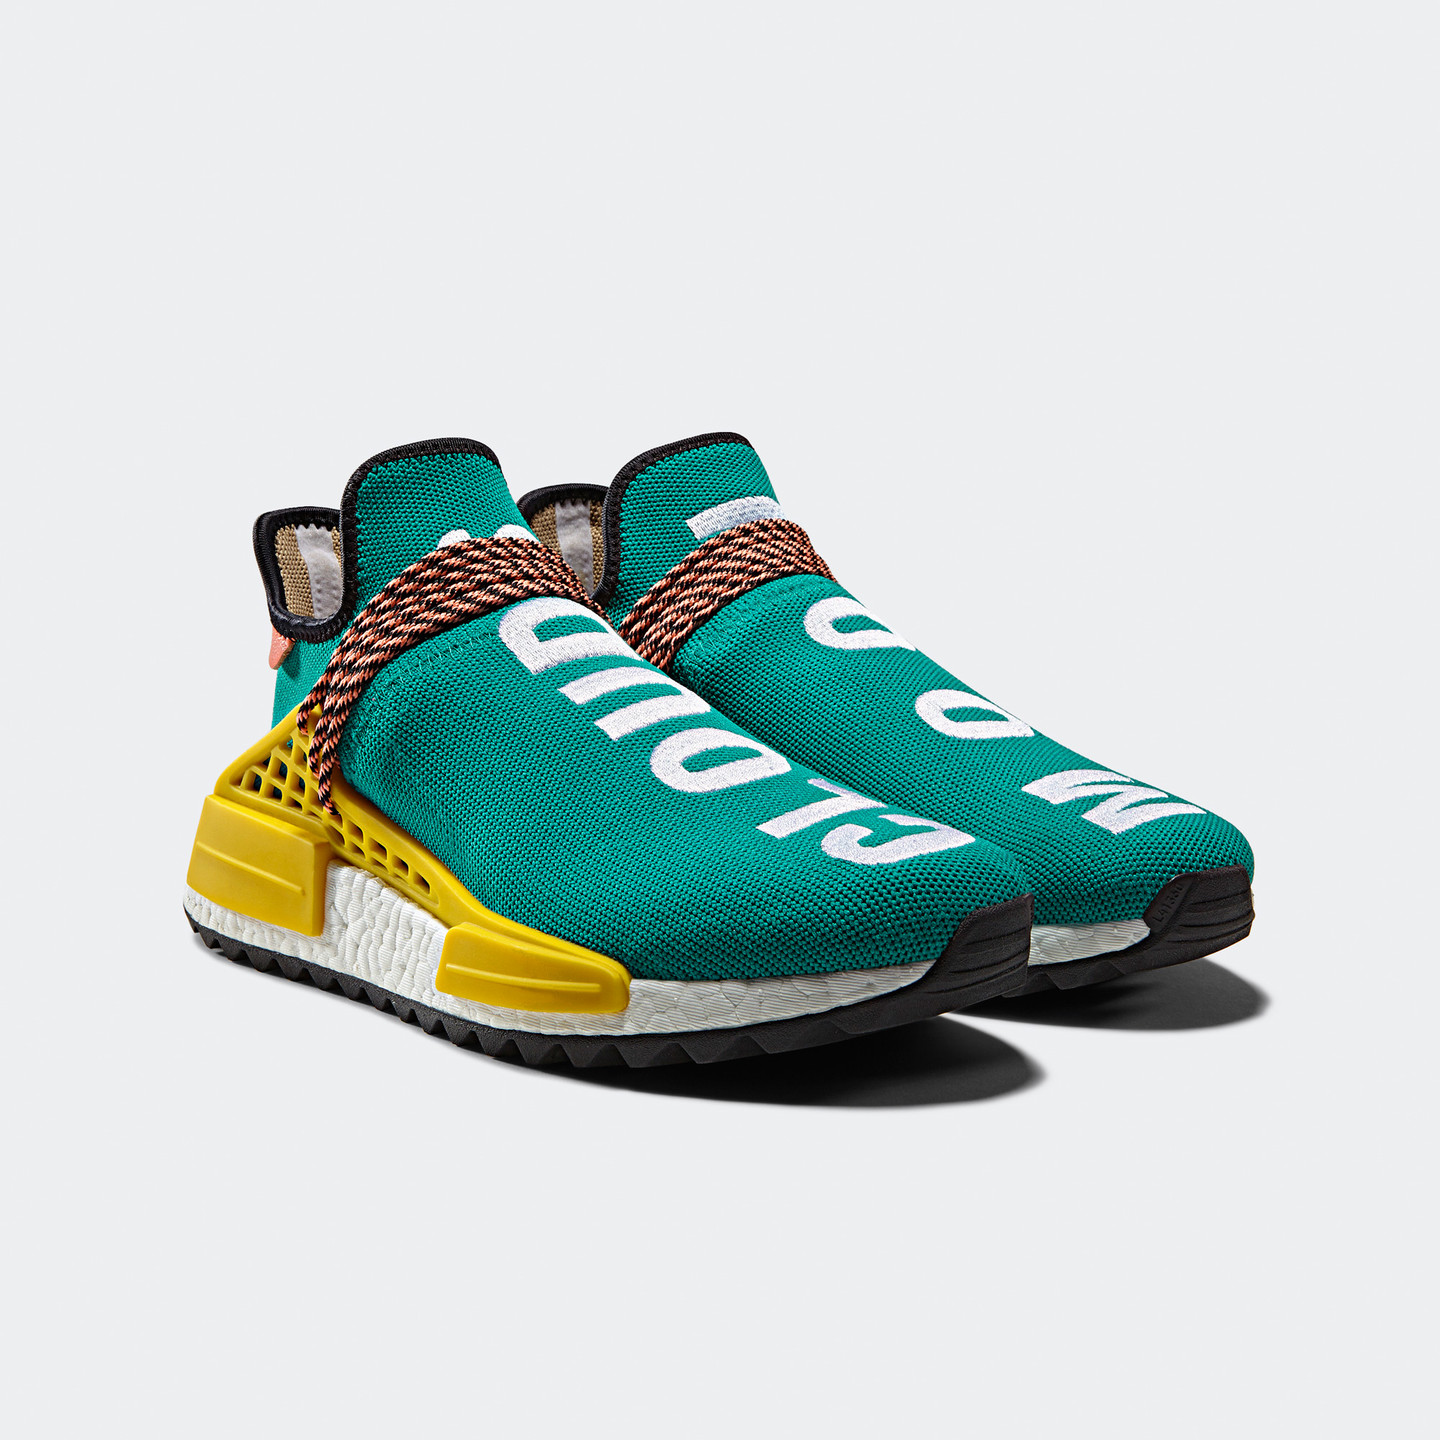 Adidas Pharrell Williams 'Human Race' NMD Aqua / Yellow / White AC7188